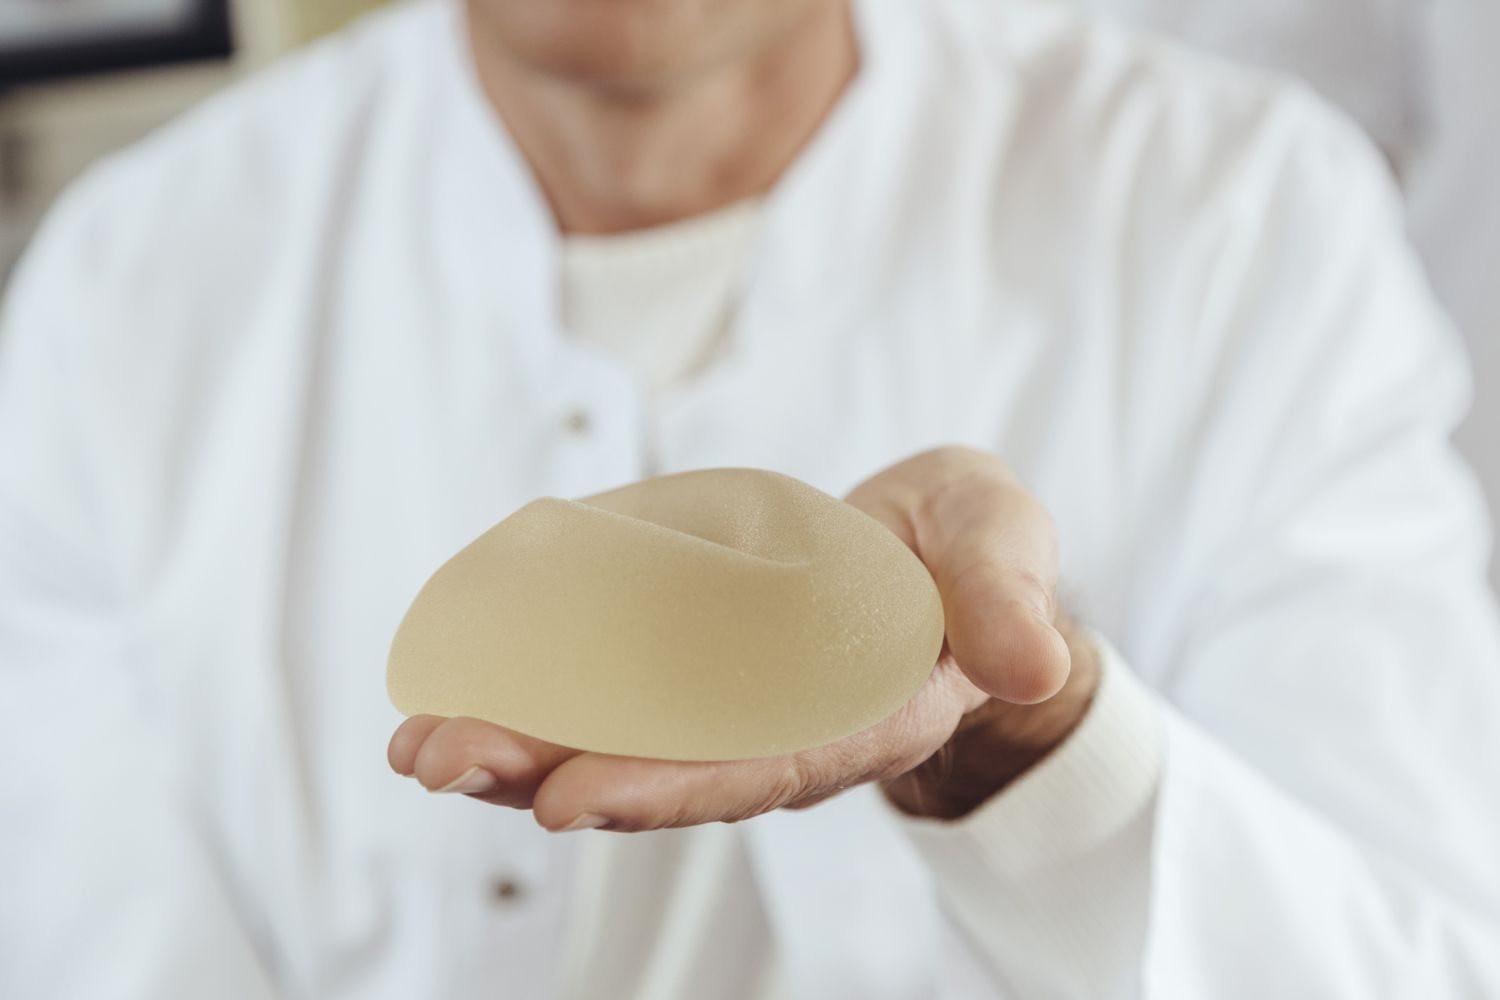 A silicone breast implants